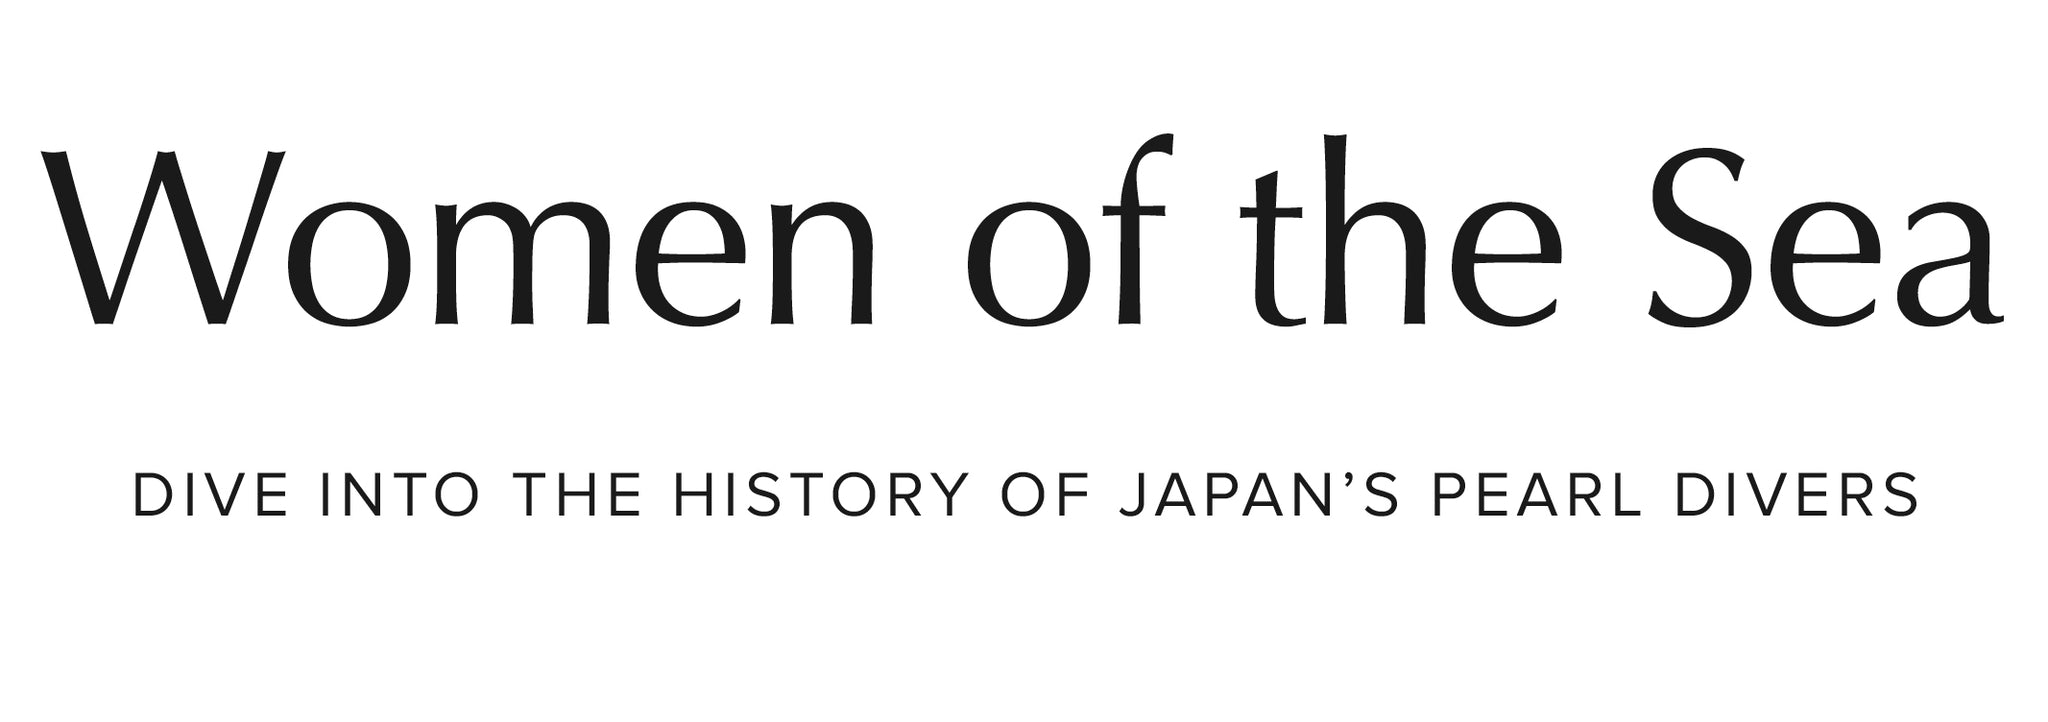 Women of the Sea: Dive into the history of Japan's Pearl Divers